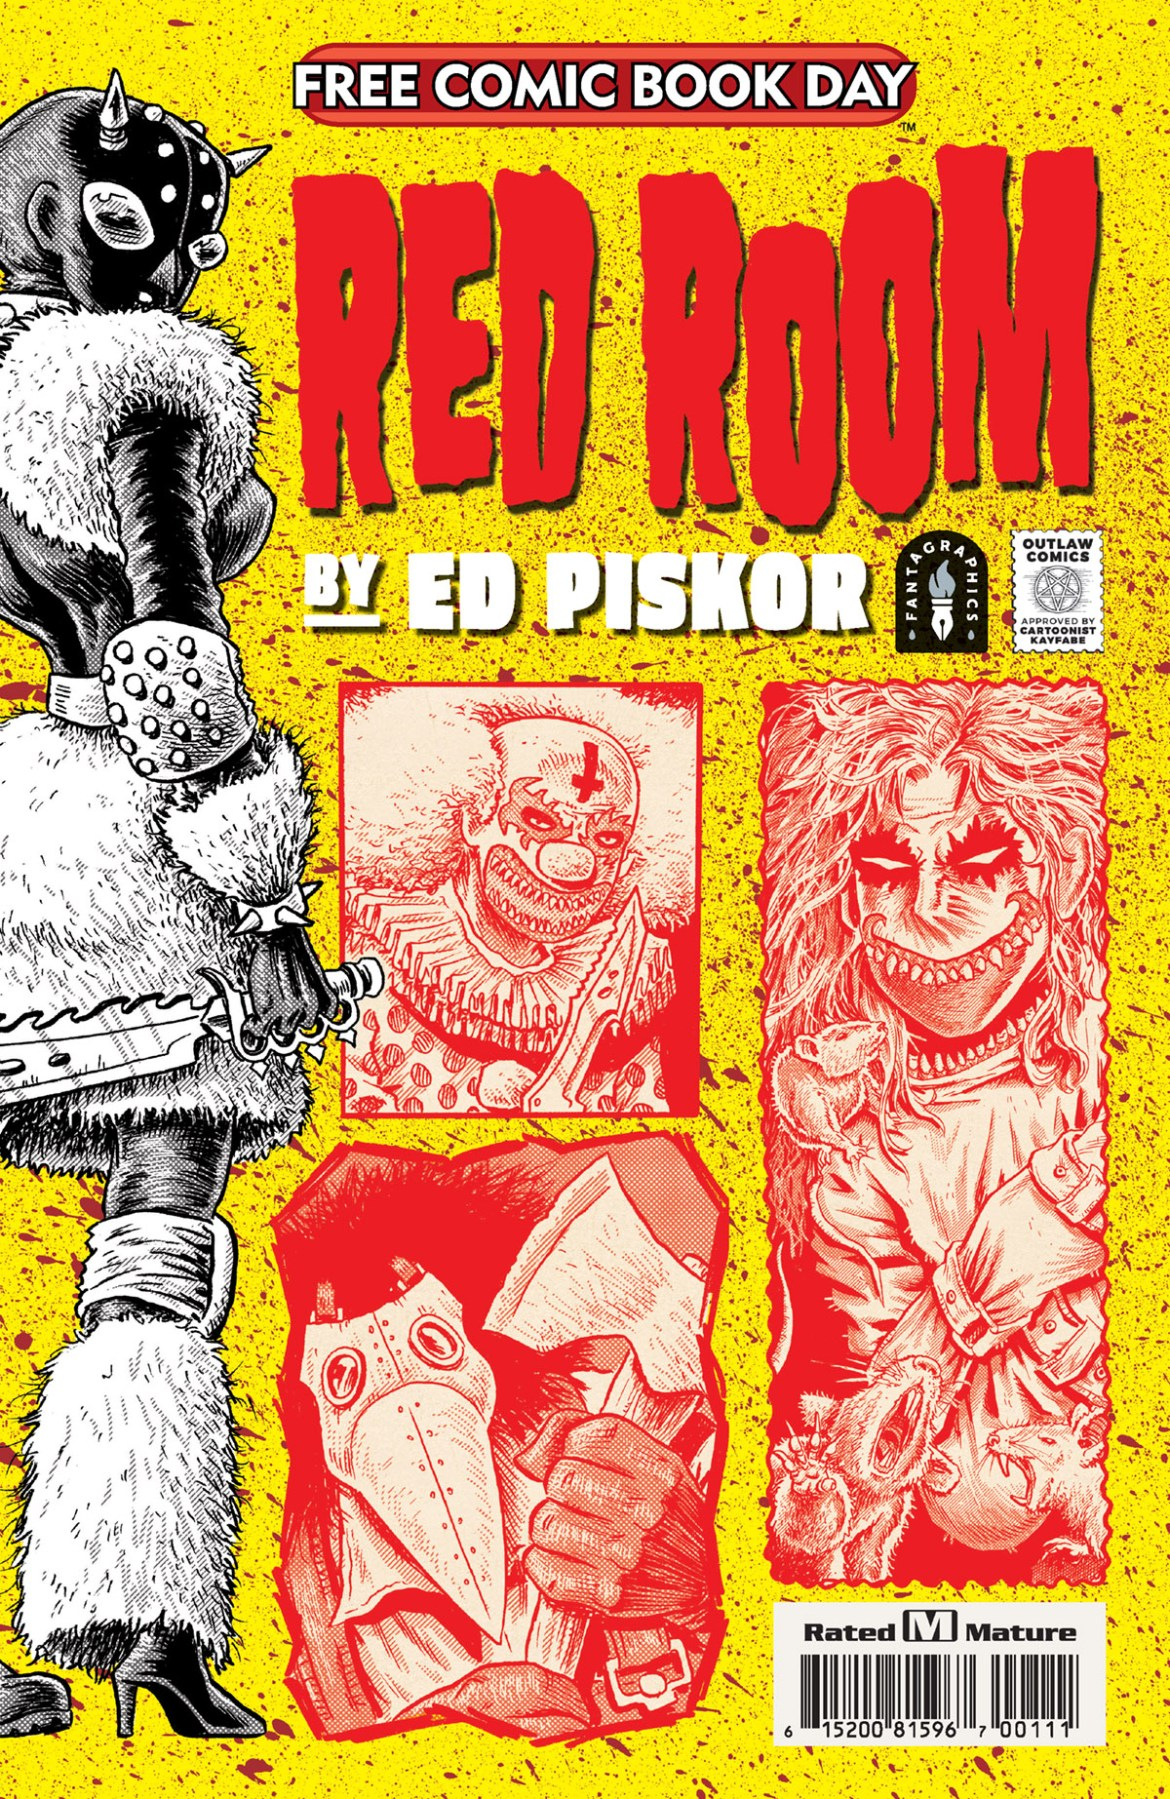 FCBD21_SILVER_Fantagraphics_Red-Room Complete Free Comic Book Day 2021 comic book line-up announced